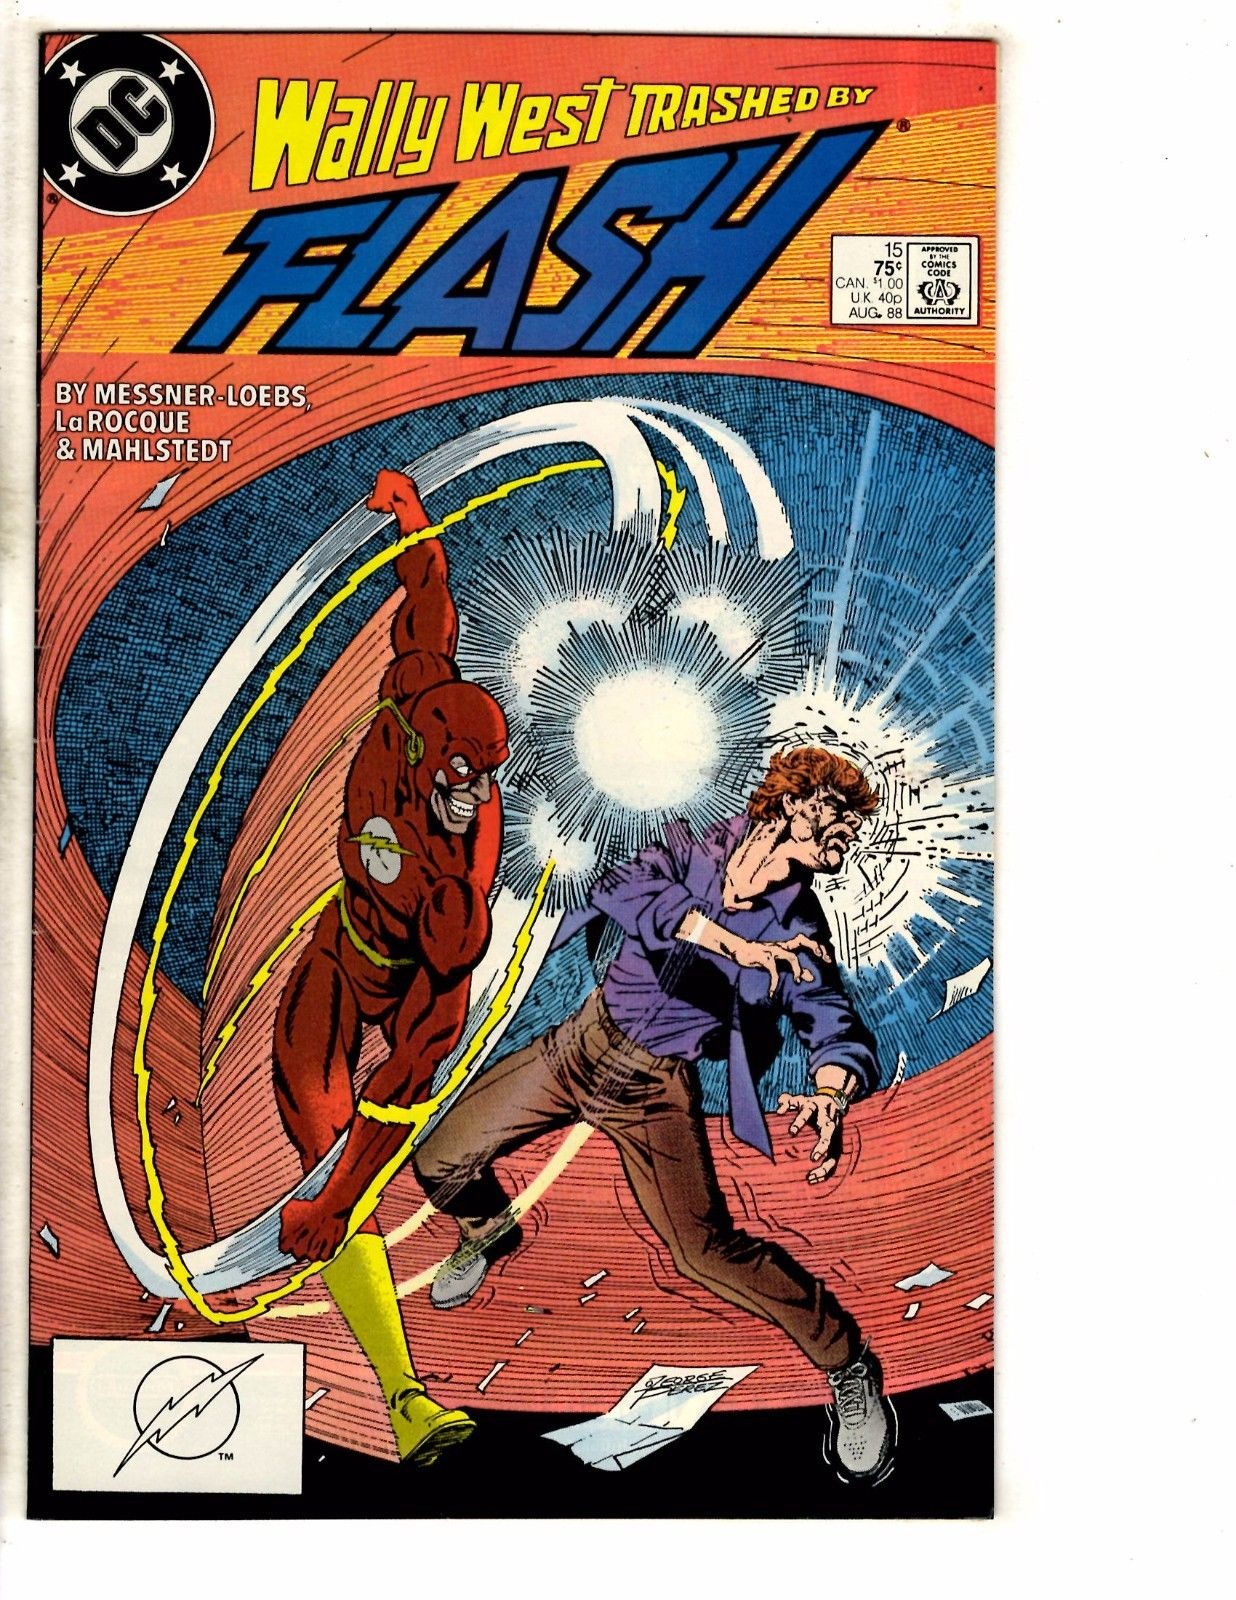 Collectibles Fate Dc Comic Books # 2 25 26 Dematteis Messner-loebs Giffen Hunt Lh26 3 Dr